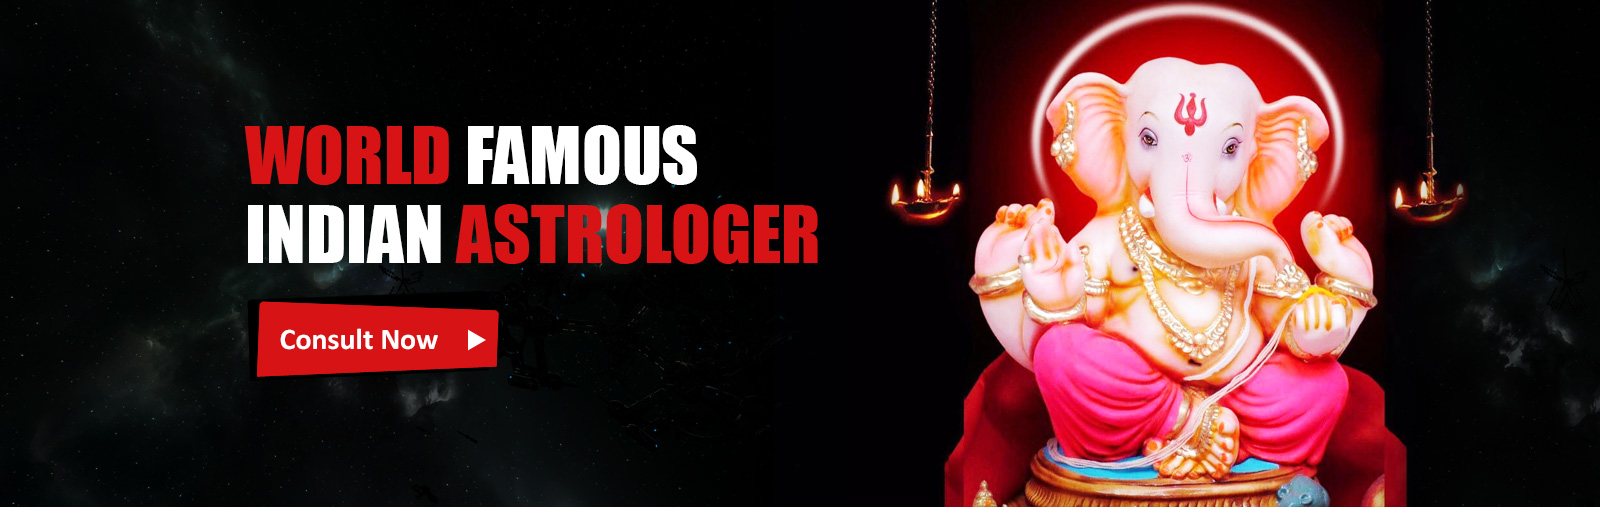 most-famous-astrologer